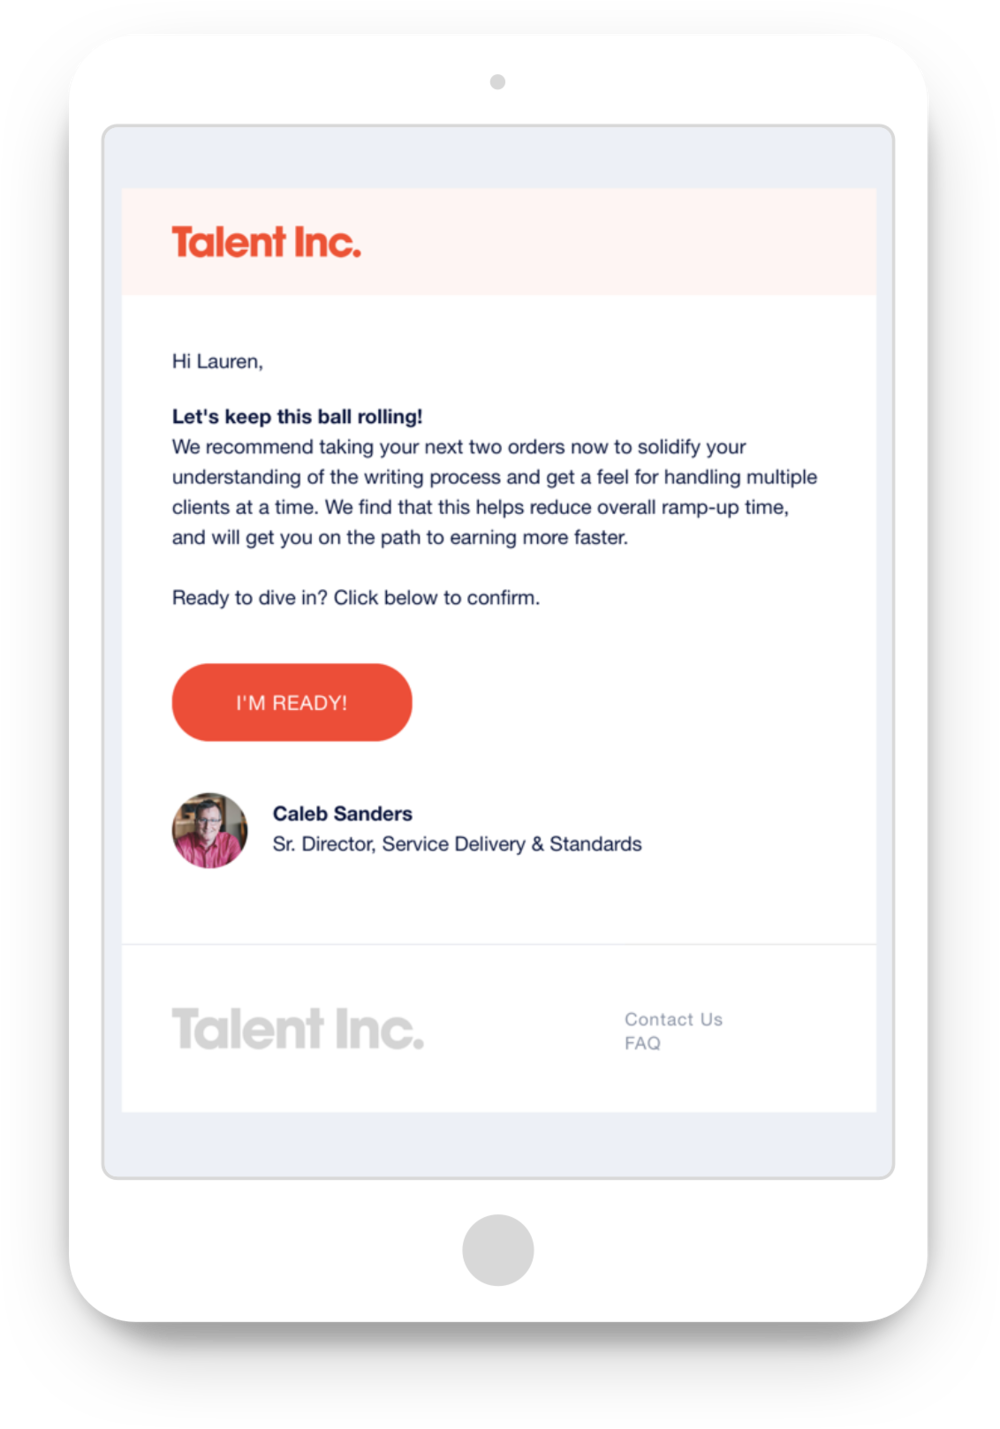 Tablet view of an onboarding email